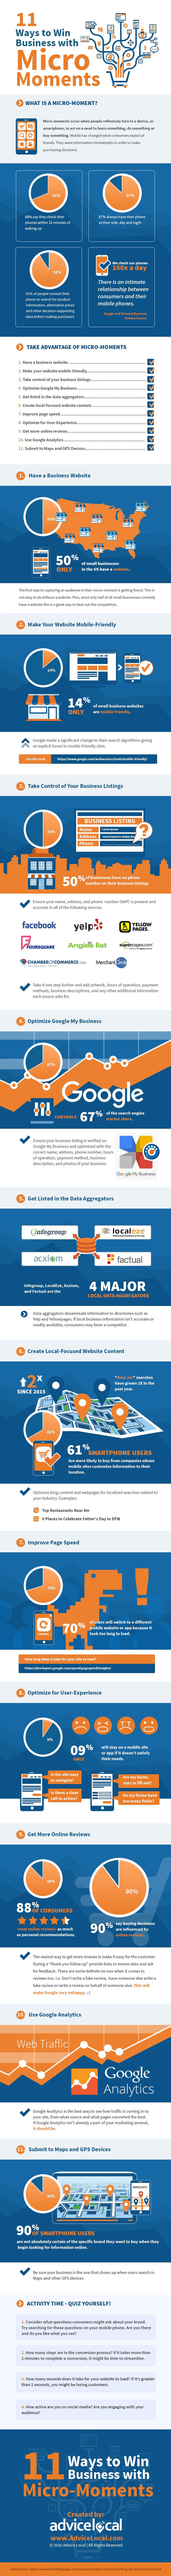 micro-moments-infographic.jpg (JPEG Image, 715×10770 pixels) - Scaled (7%)